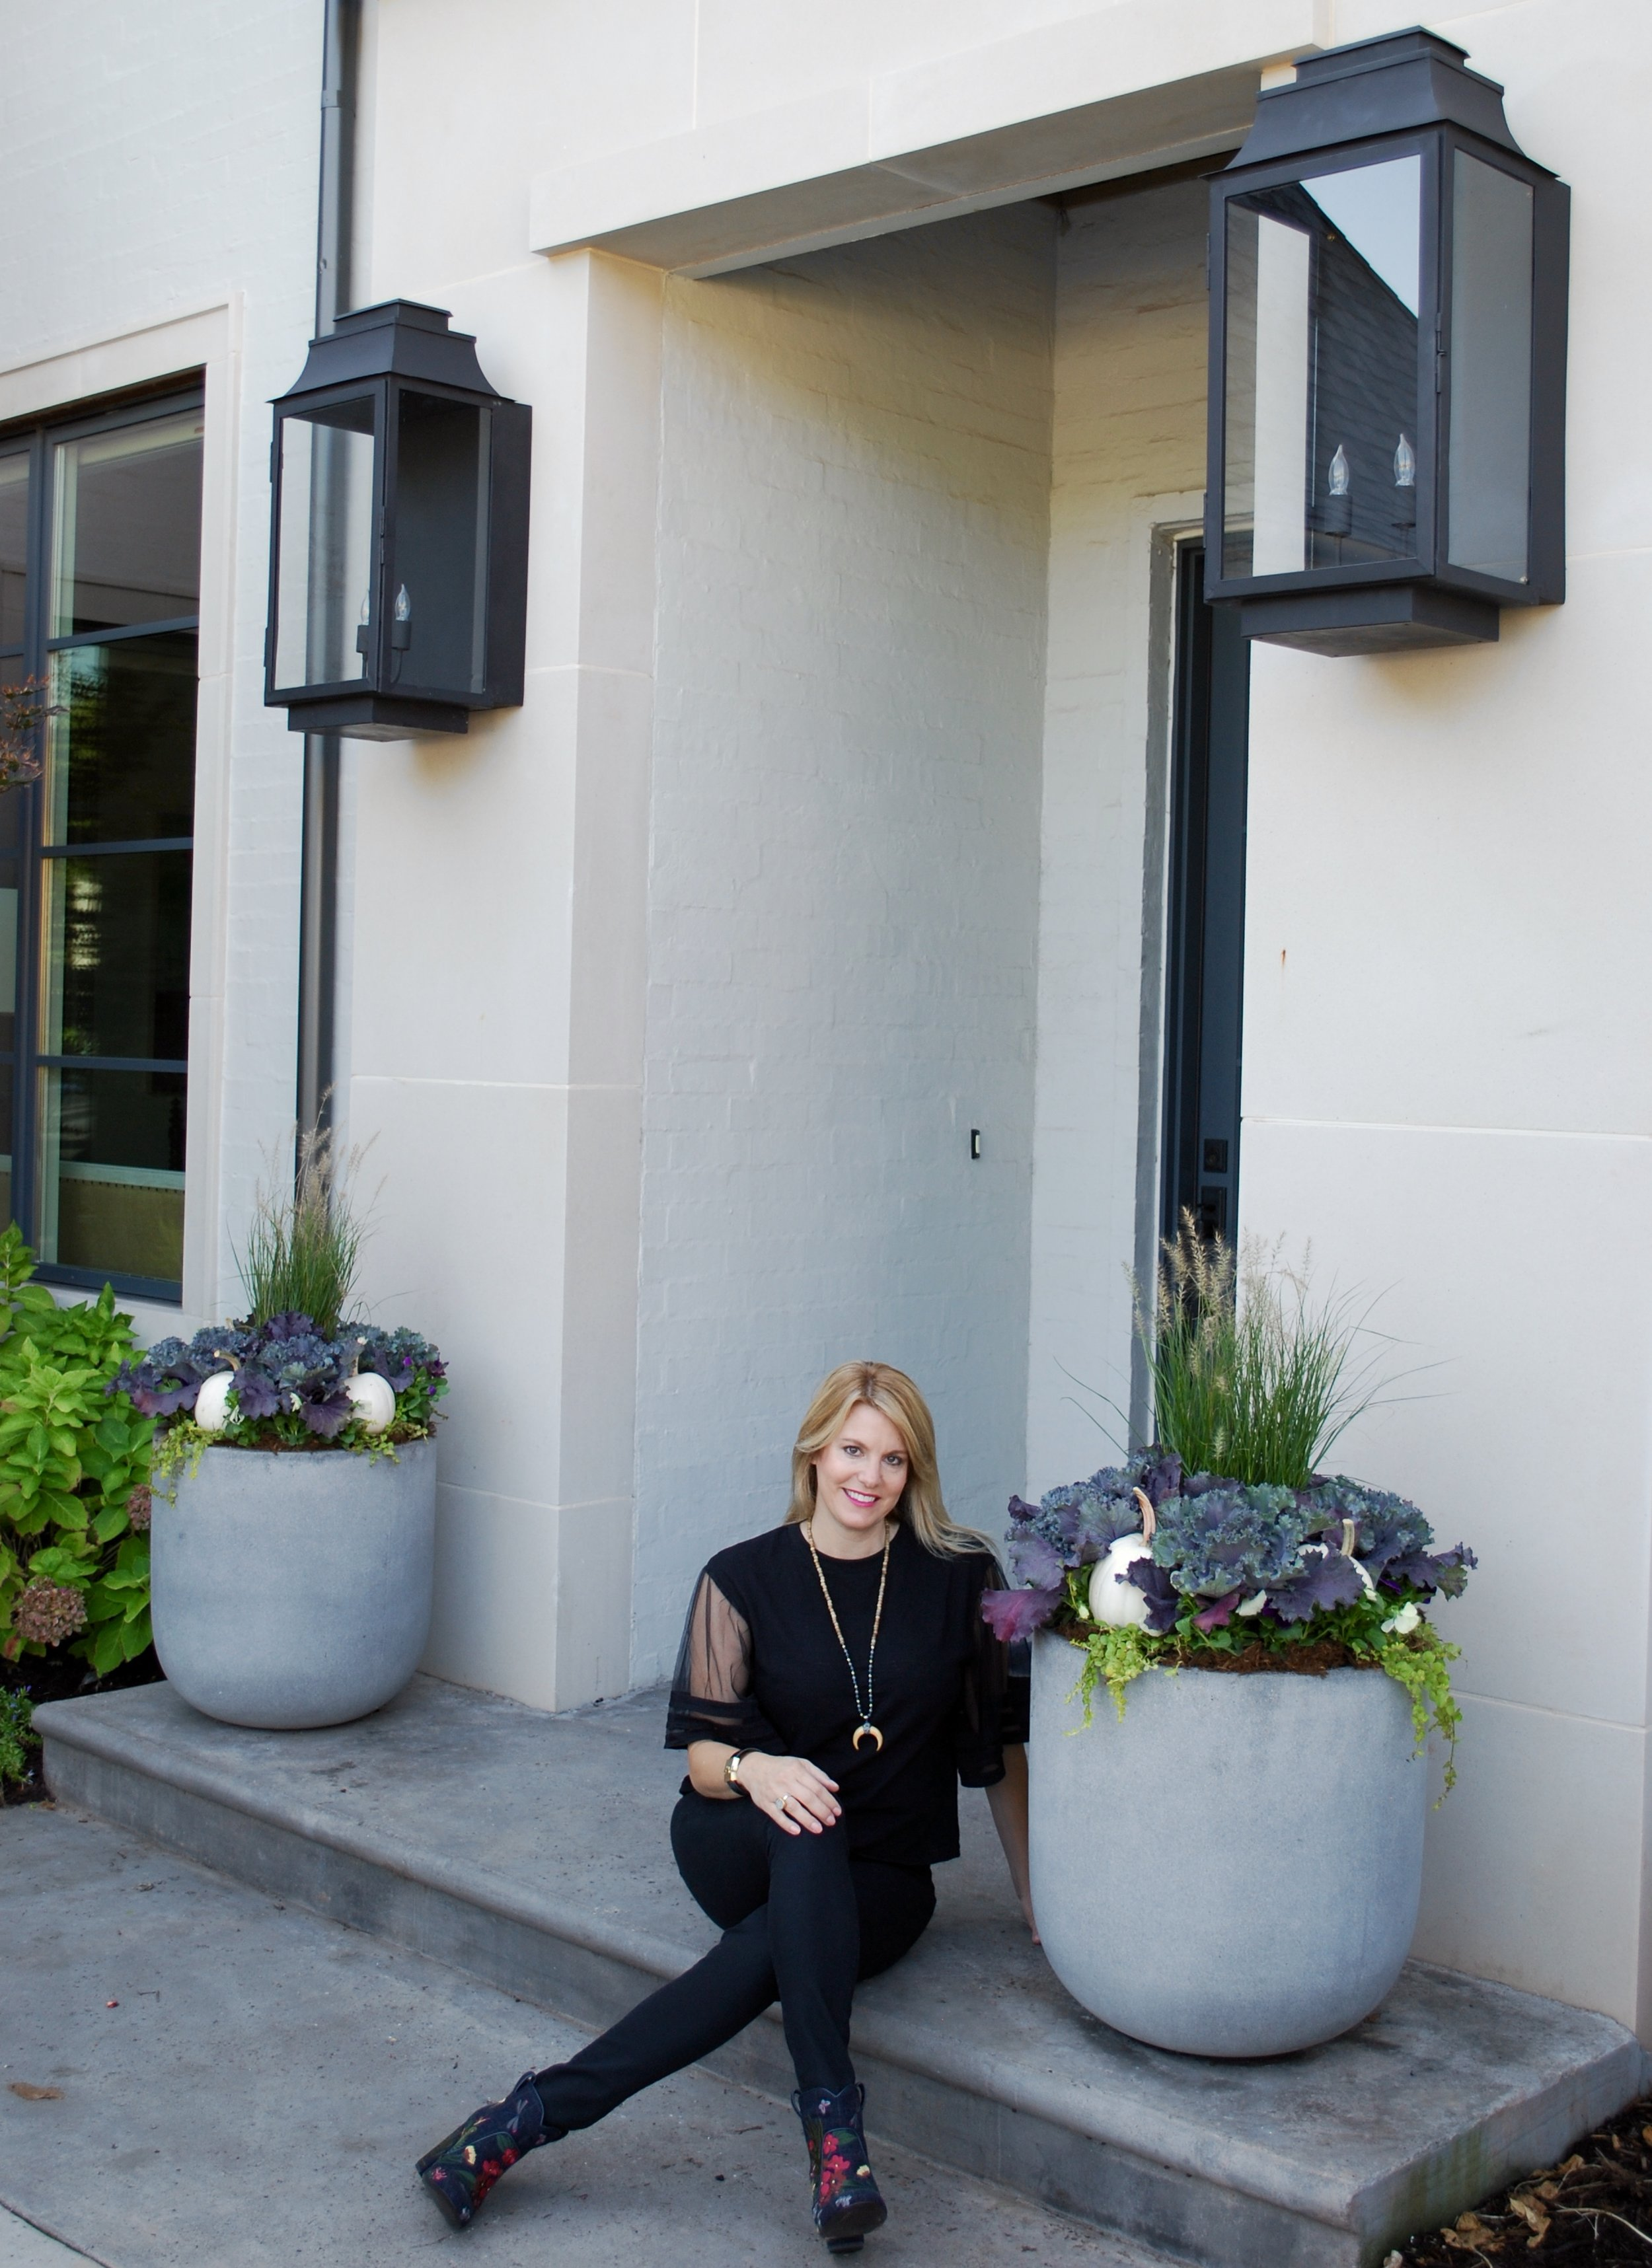 """Curb Appeal Shout Out!   Imagine our delight when we got the call last April from Kristine Bates, an incredible interior designer in OKC, to lend her a hand with her outdoor planters. Her amazing home was going to be on the Nichols Hills Garden Tour and her outdoor pots needed a fresh new look for the summer season. Kristine loves what outdoor planters can add to a back patio. """"Outdoor pots, especially when they are professionally done, can add so much to an outdoor living space. Our covered back patio is an extension of our home and our family spends time there daily. All our living room and kitchen windows look out onto our back patio so we really need our outdoor planters to look fantastic. As a designer, it's important for our house to look """"finished"""" on the inside and out. It's nice to be able to outsource the container gardens to Adorn because I know they will look wonderful all season long. Elizabeth has helped with our planters now for two seasons - summer and fall. I highly recommend her to my clients too.""""  We LOVE digging in the dirt at her beautiful home! Kristine's firm, Kristine Bates Interiors, does everything from updating to designing complete house plans starting from the ground up to final completion. She is SO talented and we are thankful for the opportunity to work with her and her team on a seasonal basis."""